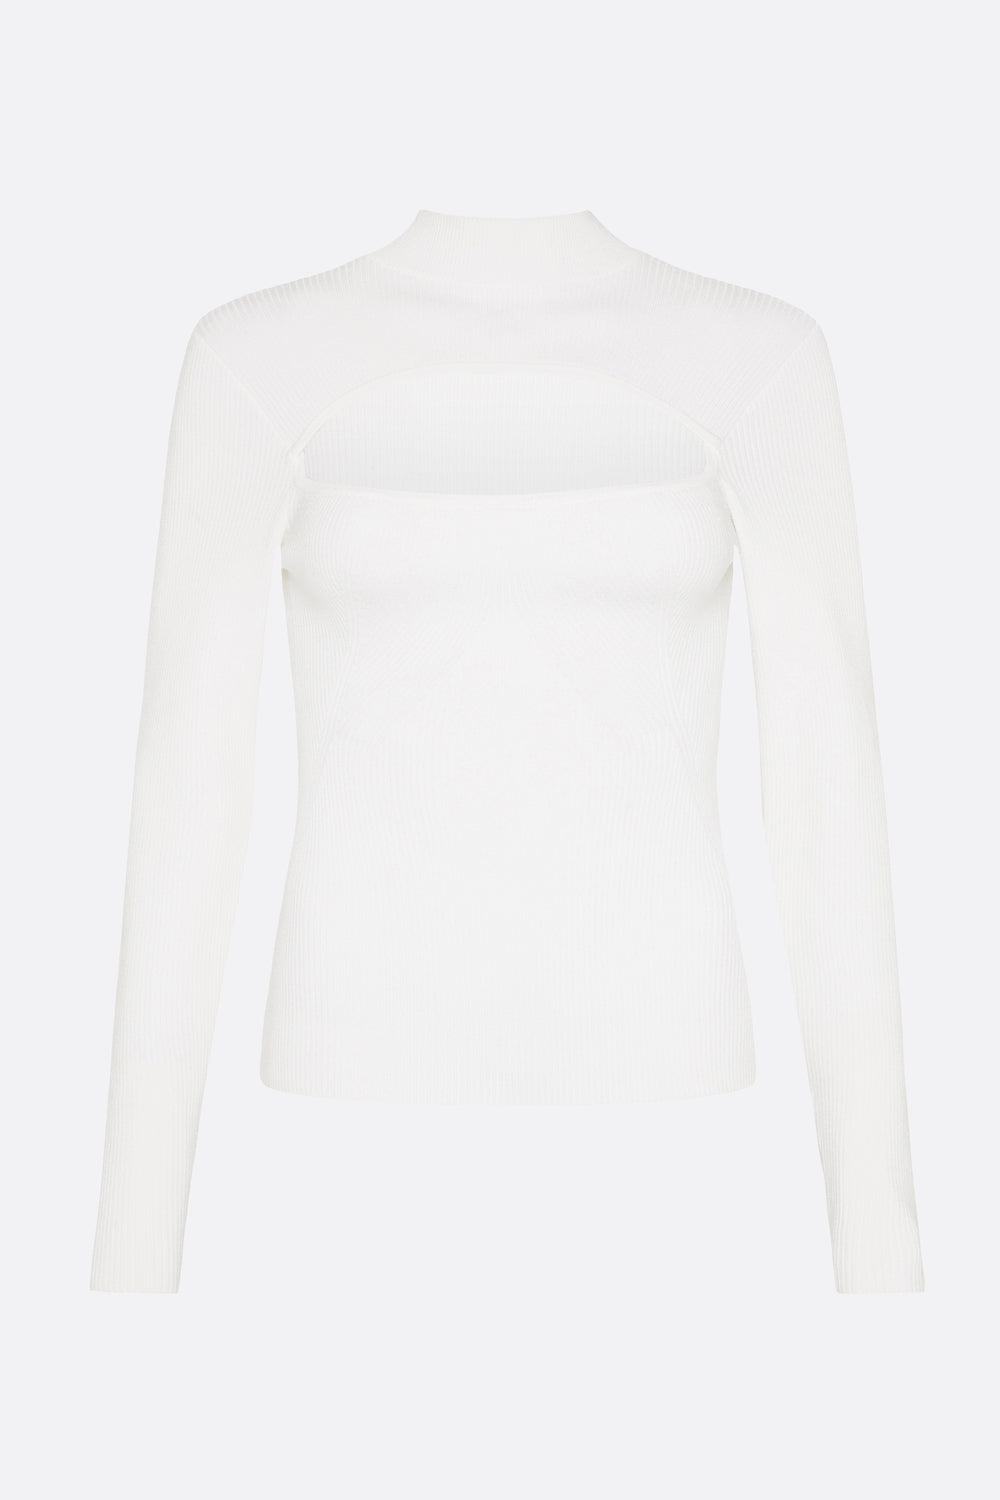 VIRTUAL DIMENSION KNIT TOP